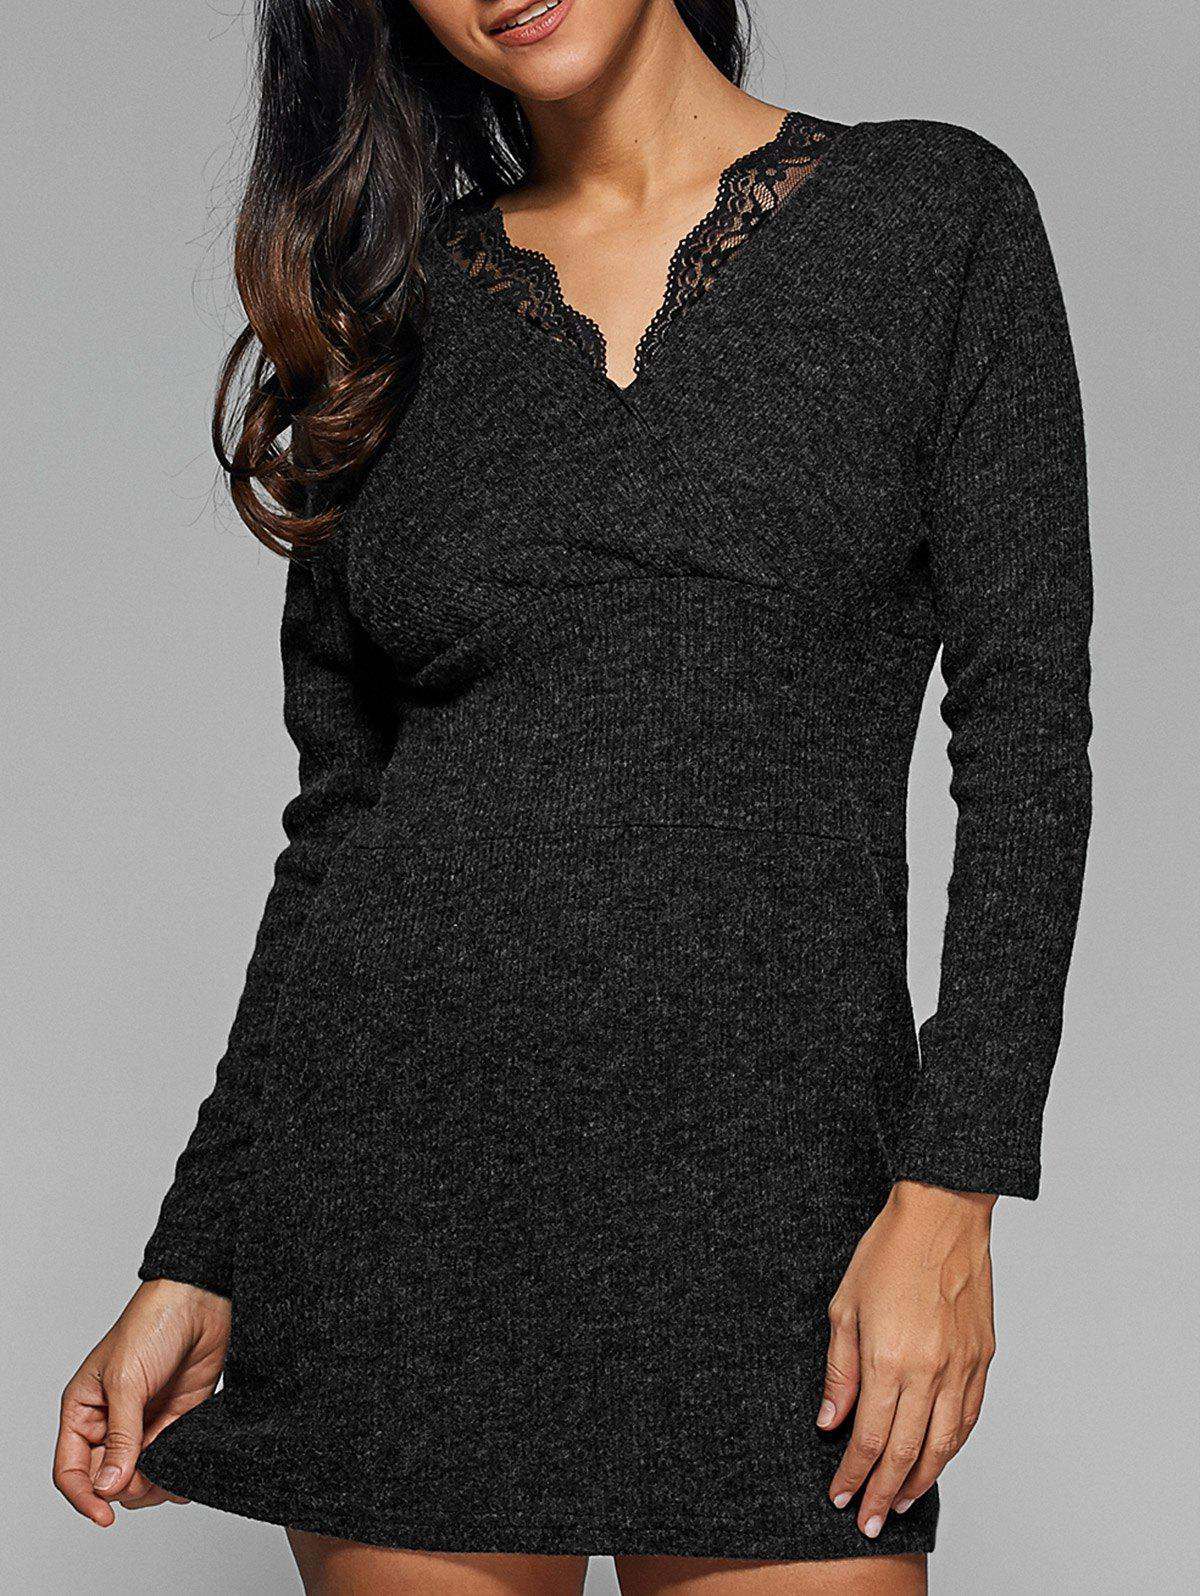 Ribbed Lace Insert Short Jumper Dress - DEEP GRAY 2XL